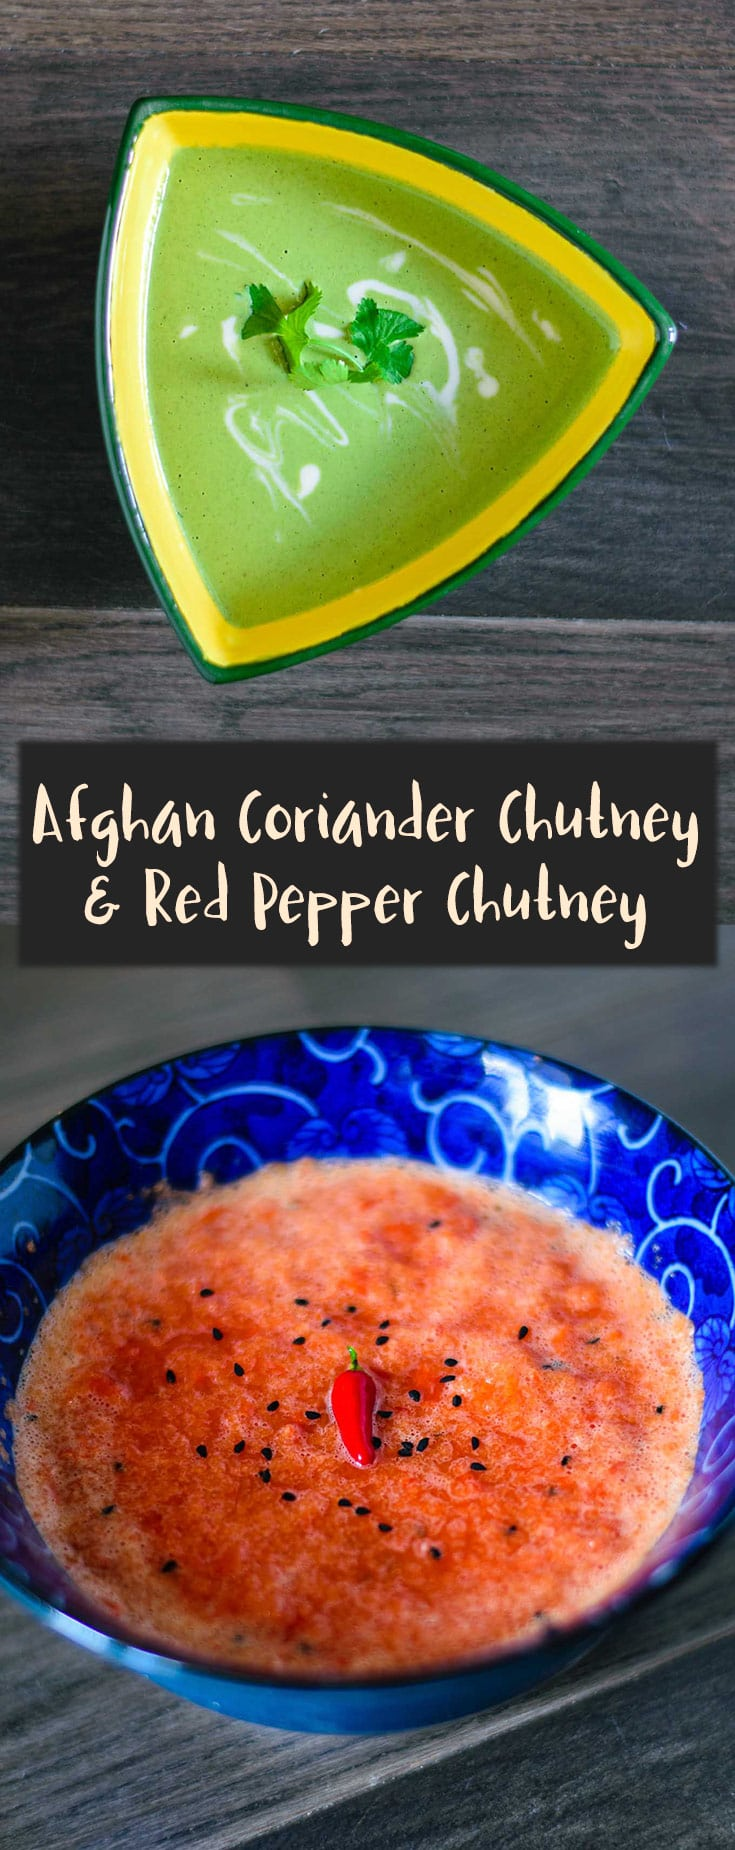 Afghan Coriander Chutney is creamy, garlicky and a bit spicy while Red Pepper Chutney is sweet and spicy. These two easy Afghan chutneys are the perfect accompaniment to your meal! | thecuriouschickpea.com #vegan #glutenfree #Afghanfood